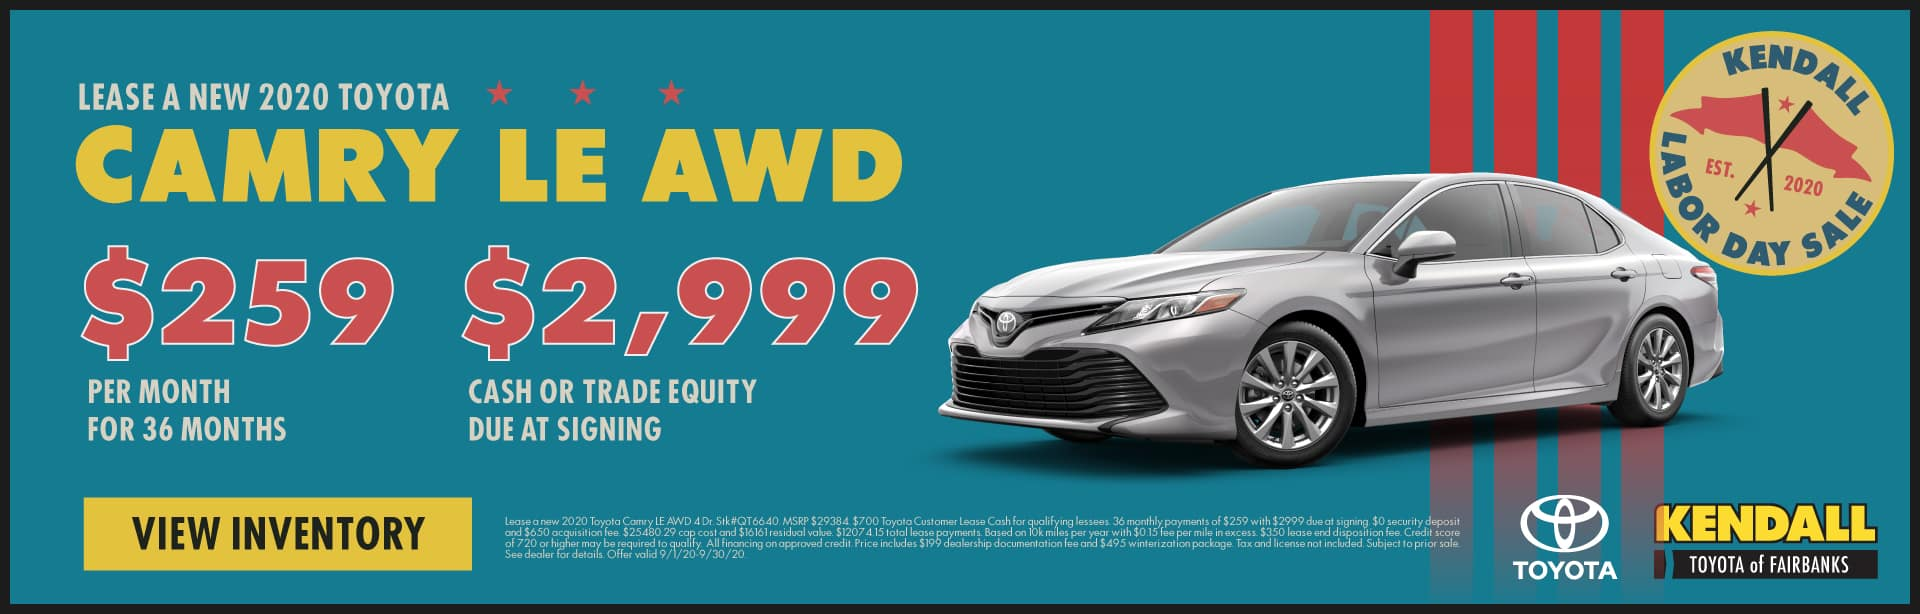 16594-FaiToy-Sep20-Web-Banners-CAMRY